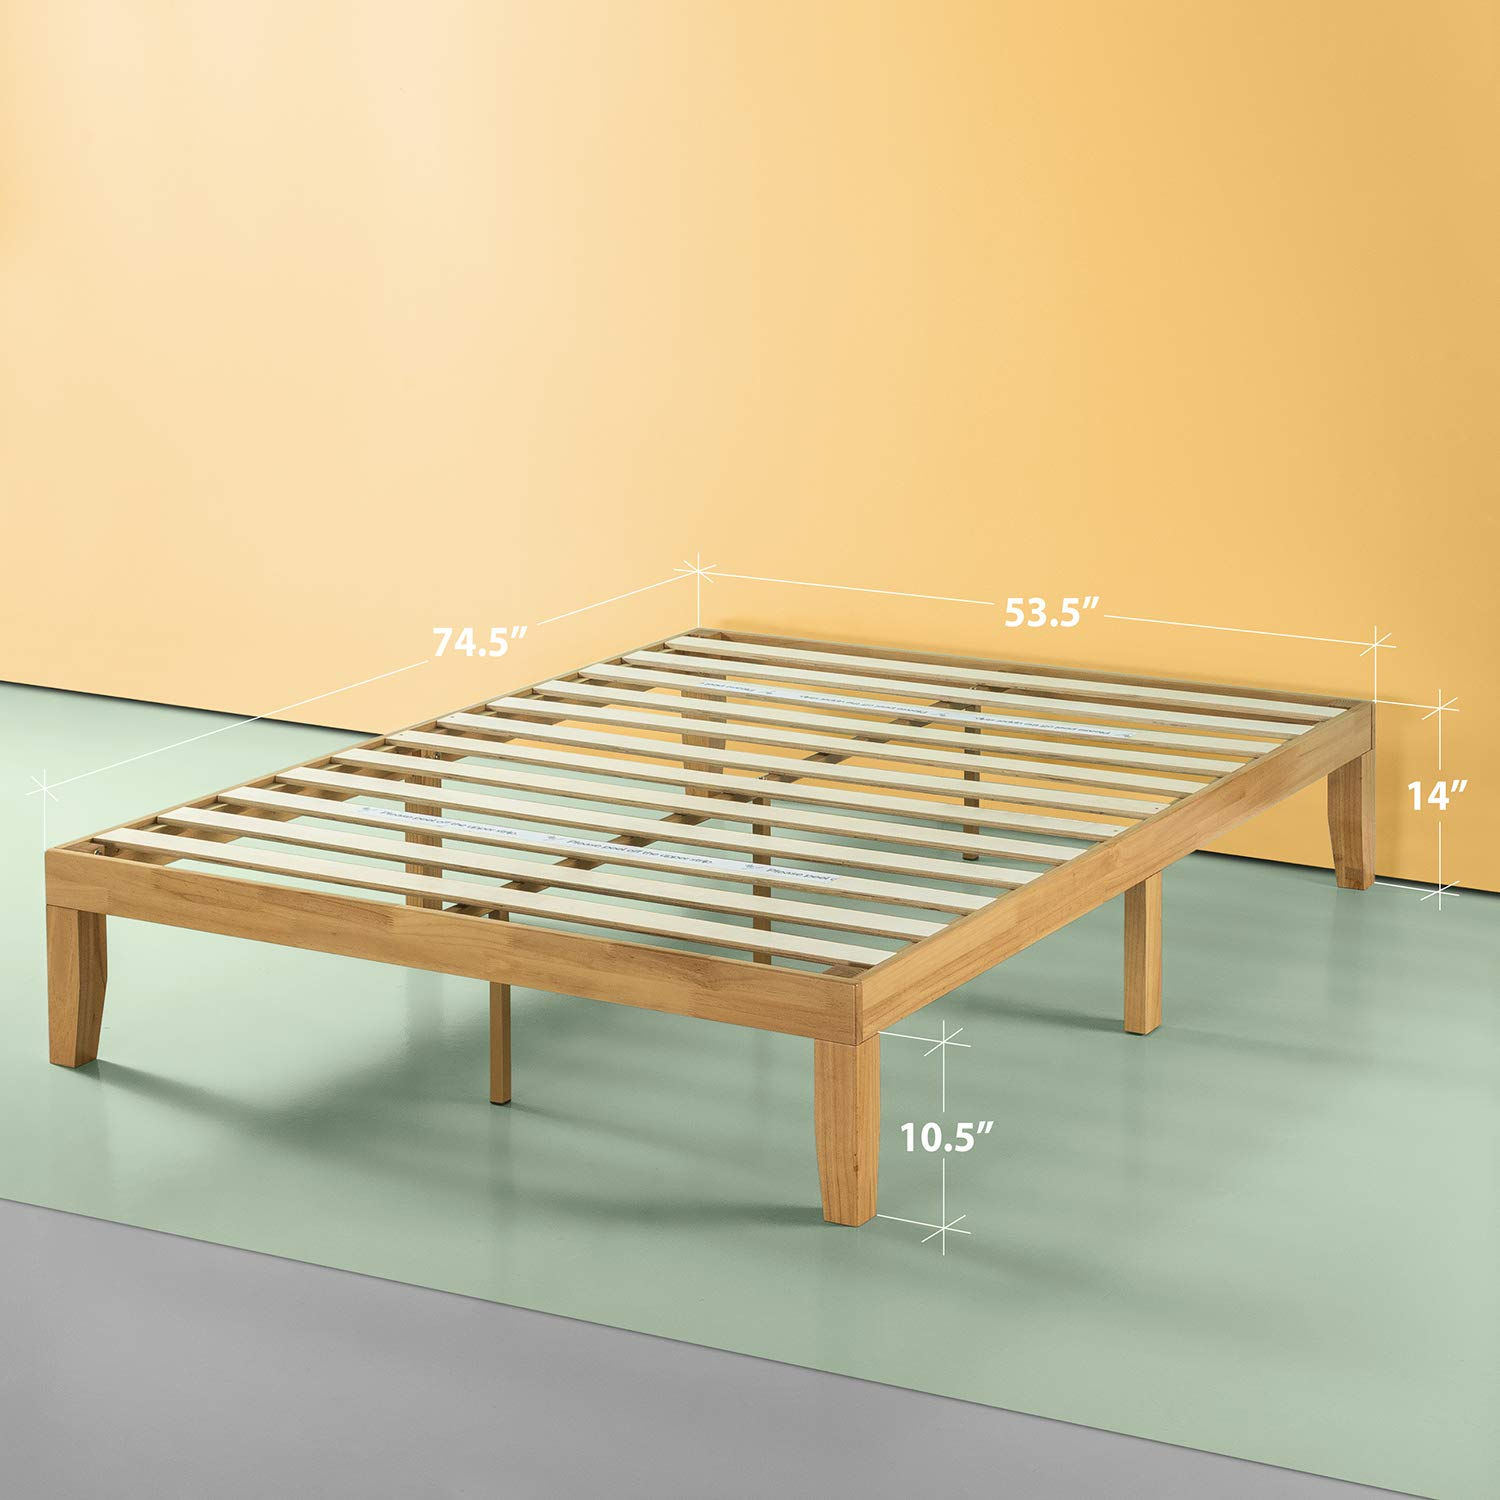 No Boxspring Needed Zinus OLB-RWPBB-14F 14 Inch Deluxe Wood Platform Bed Natural Finish Wood Slat Support Full